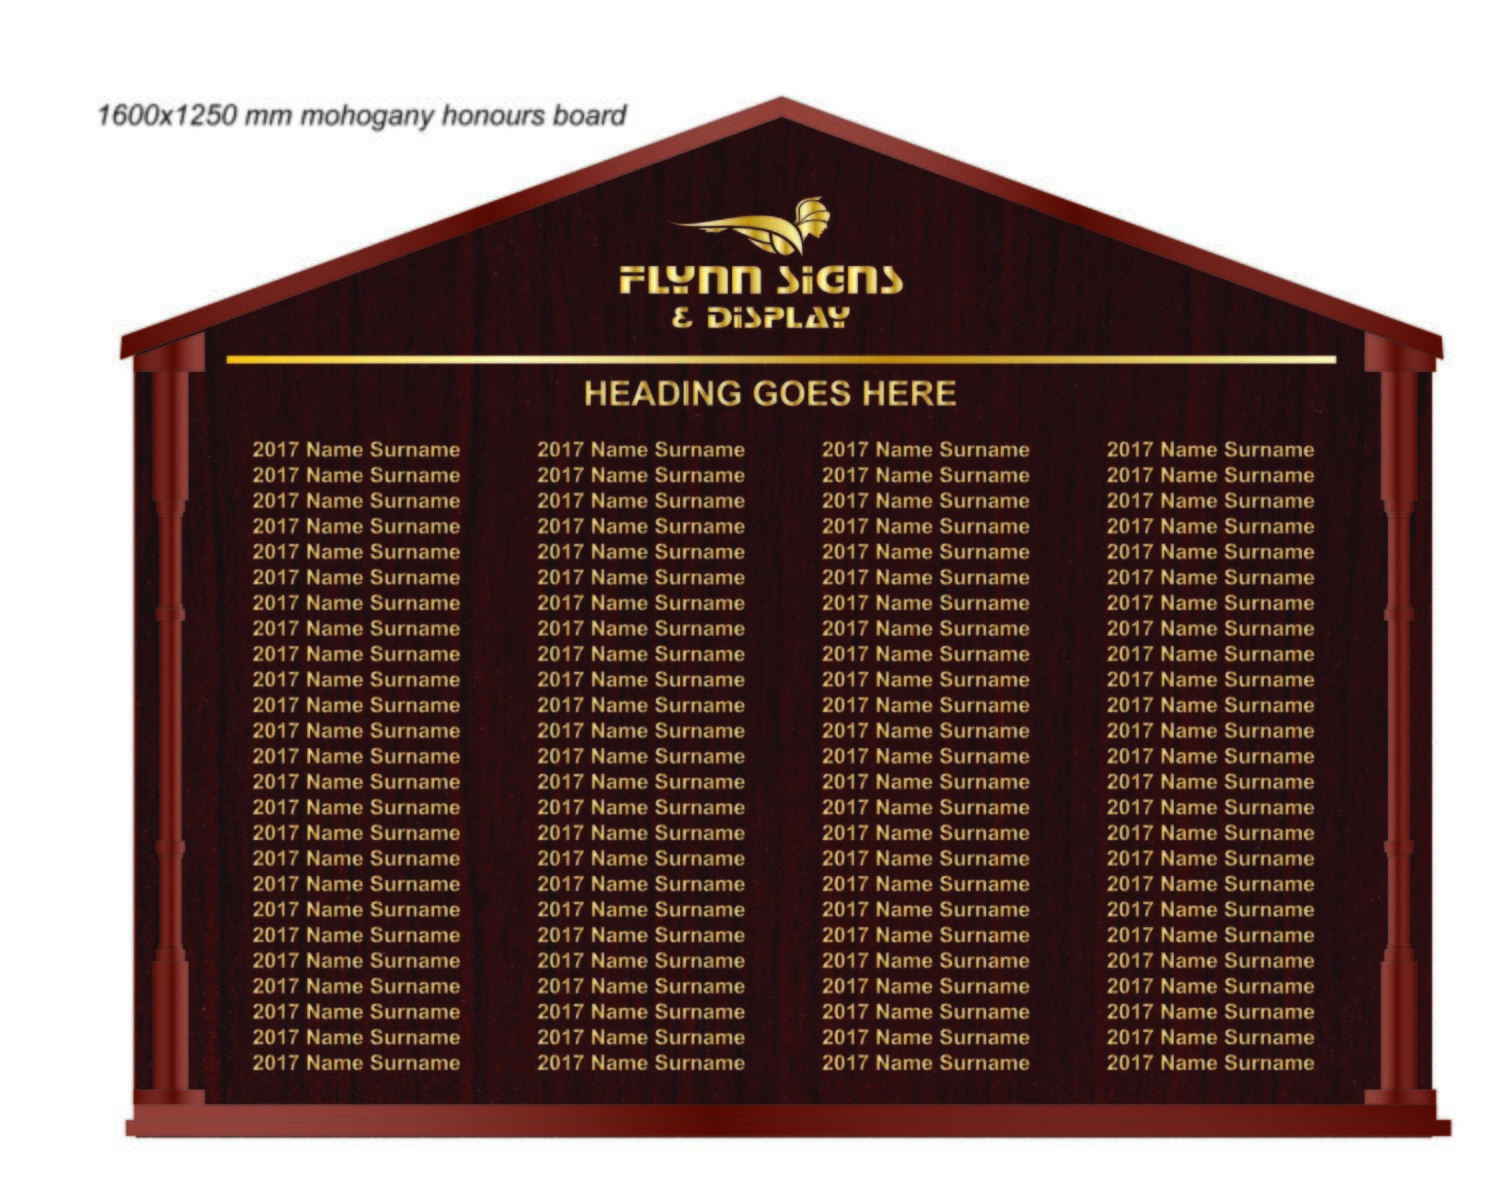 1600 x 1250 mm Traditional Apexed Honours Board